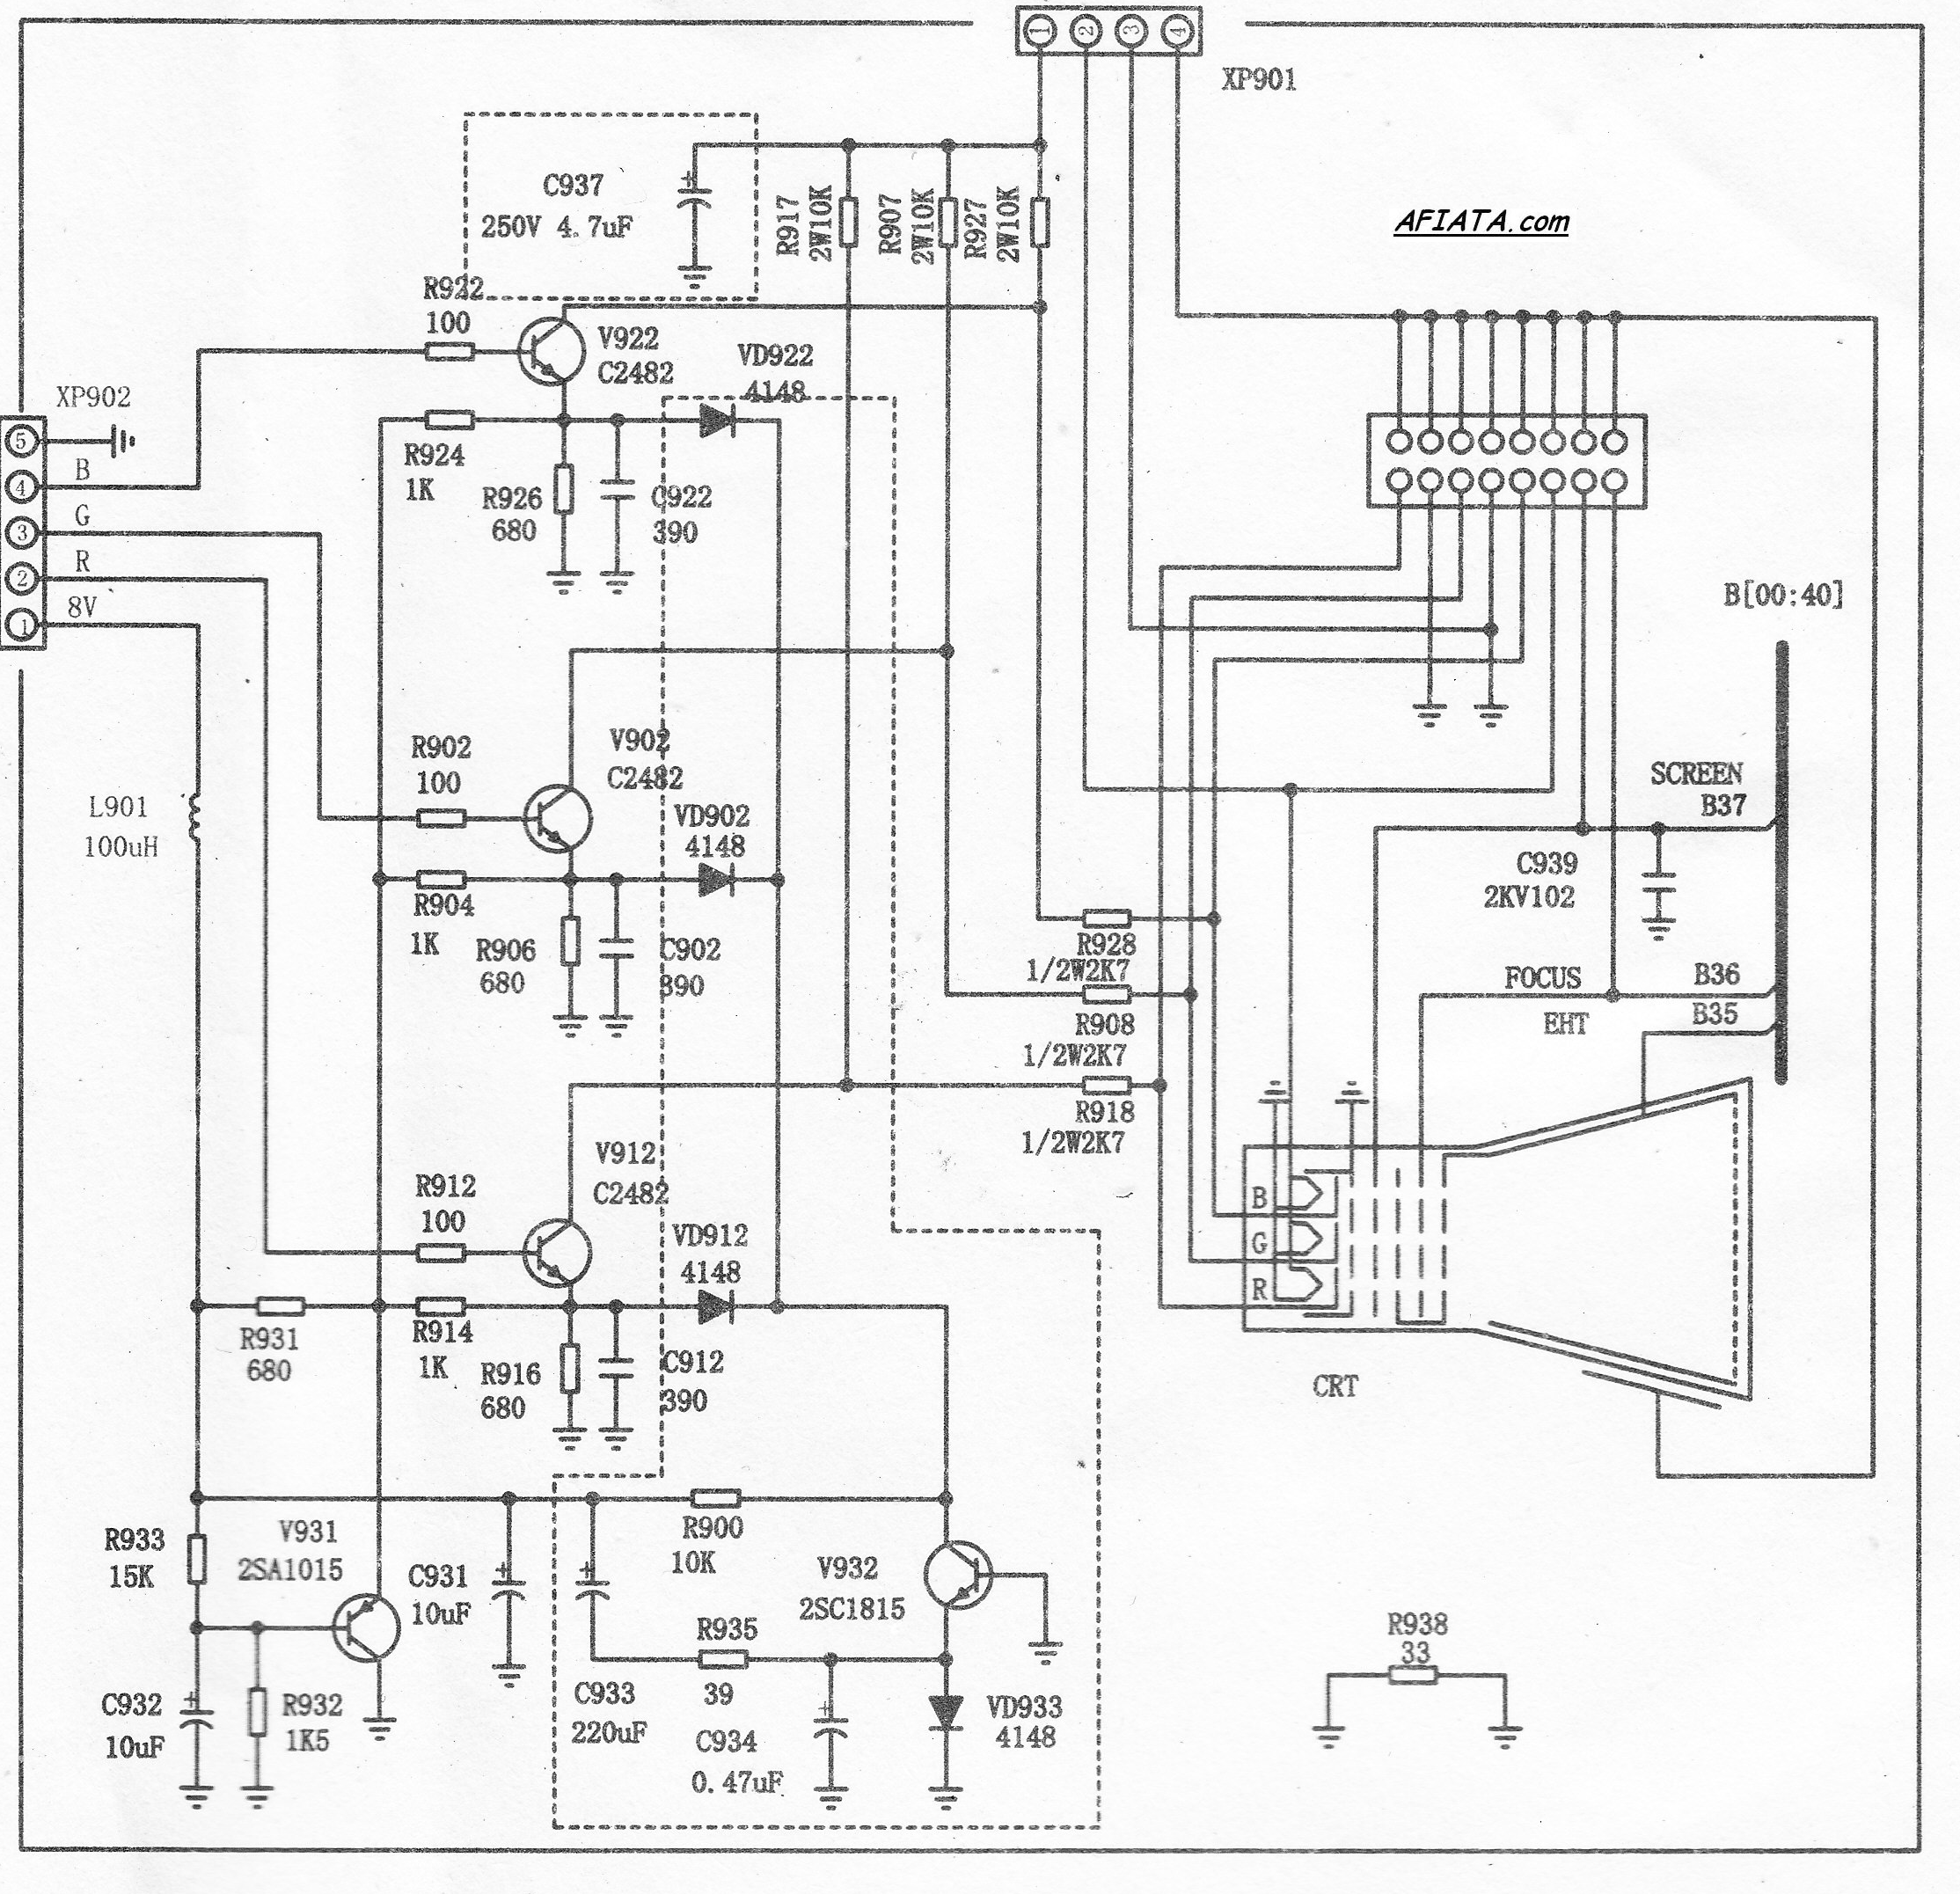 nixie tube schematic  | elsalvadorla.org